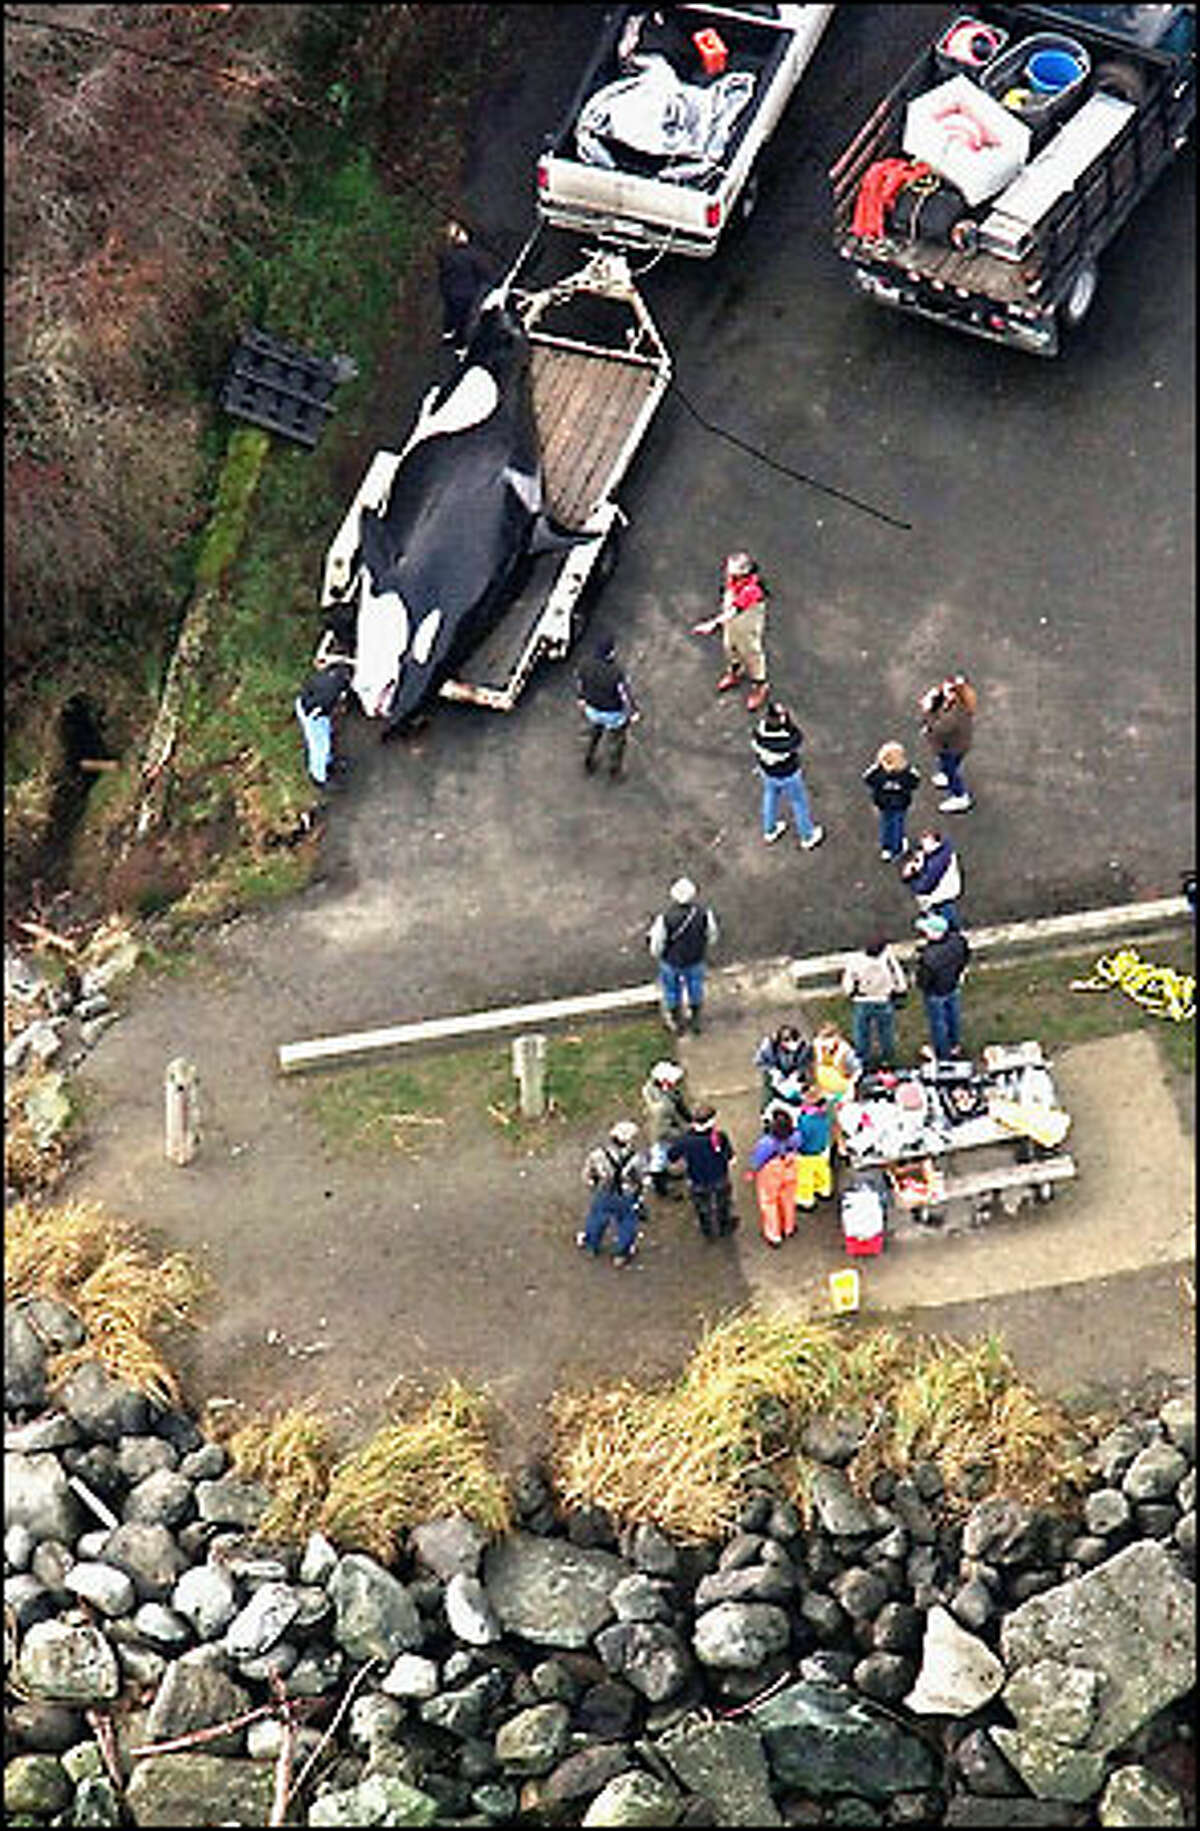 The dead female orca is loaded onto a trailer in preparation for a necropsy.